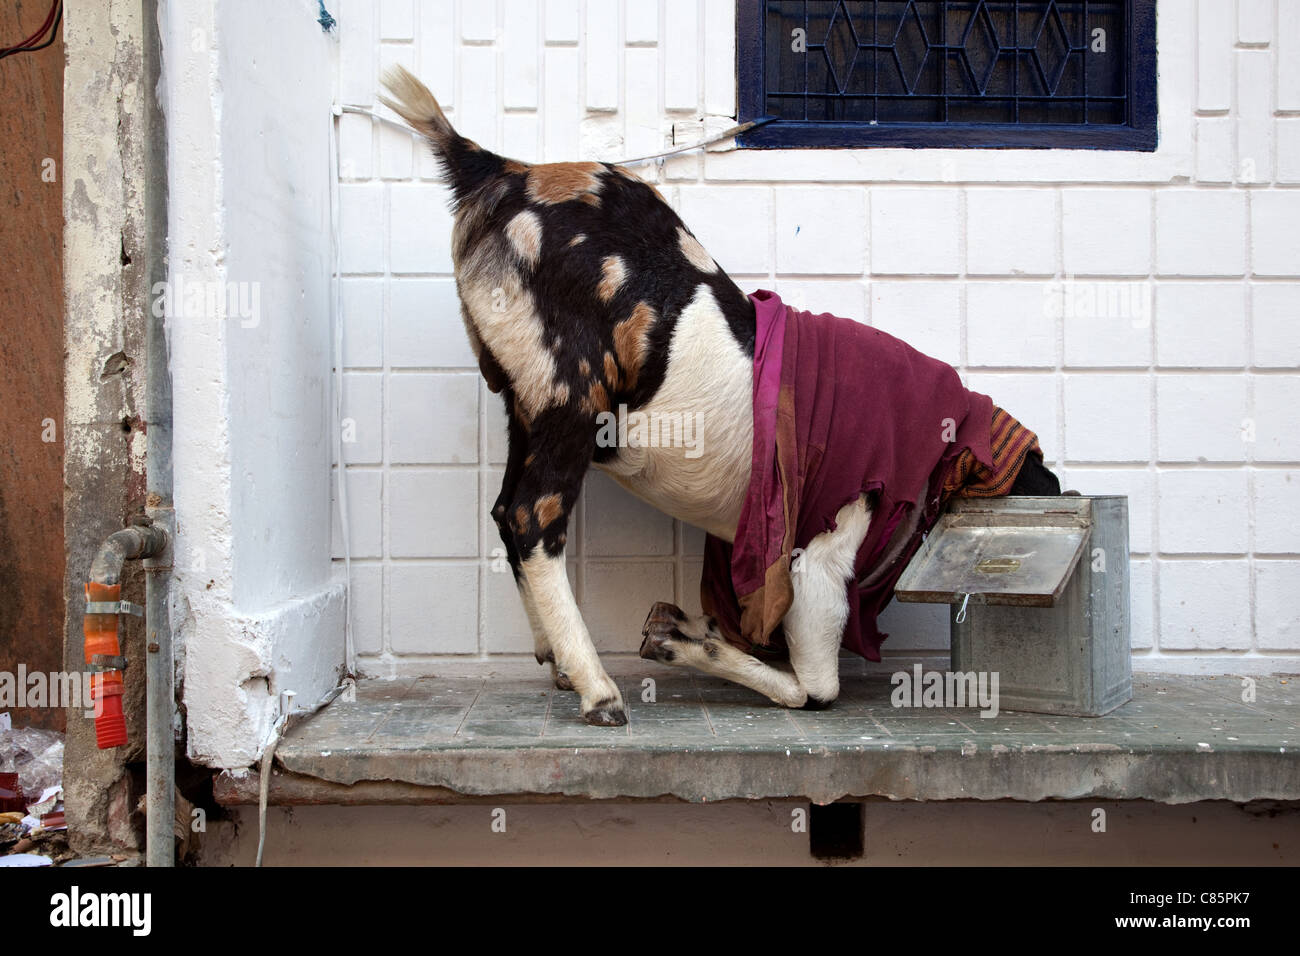 A goat wearing clothes in Agra, India. - Stock Image